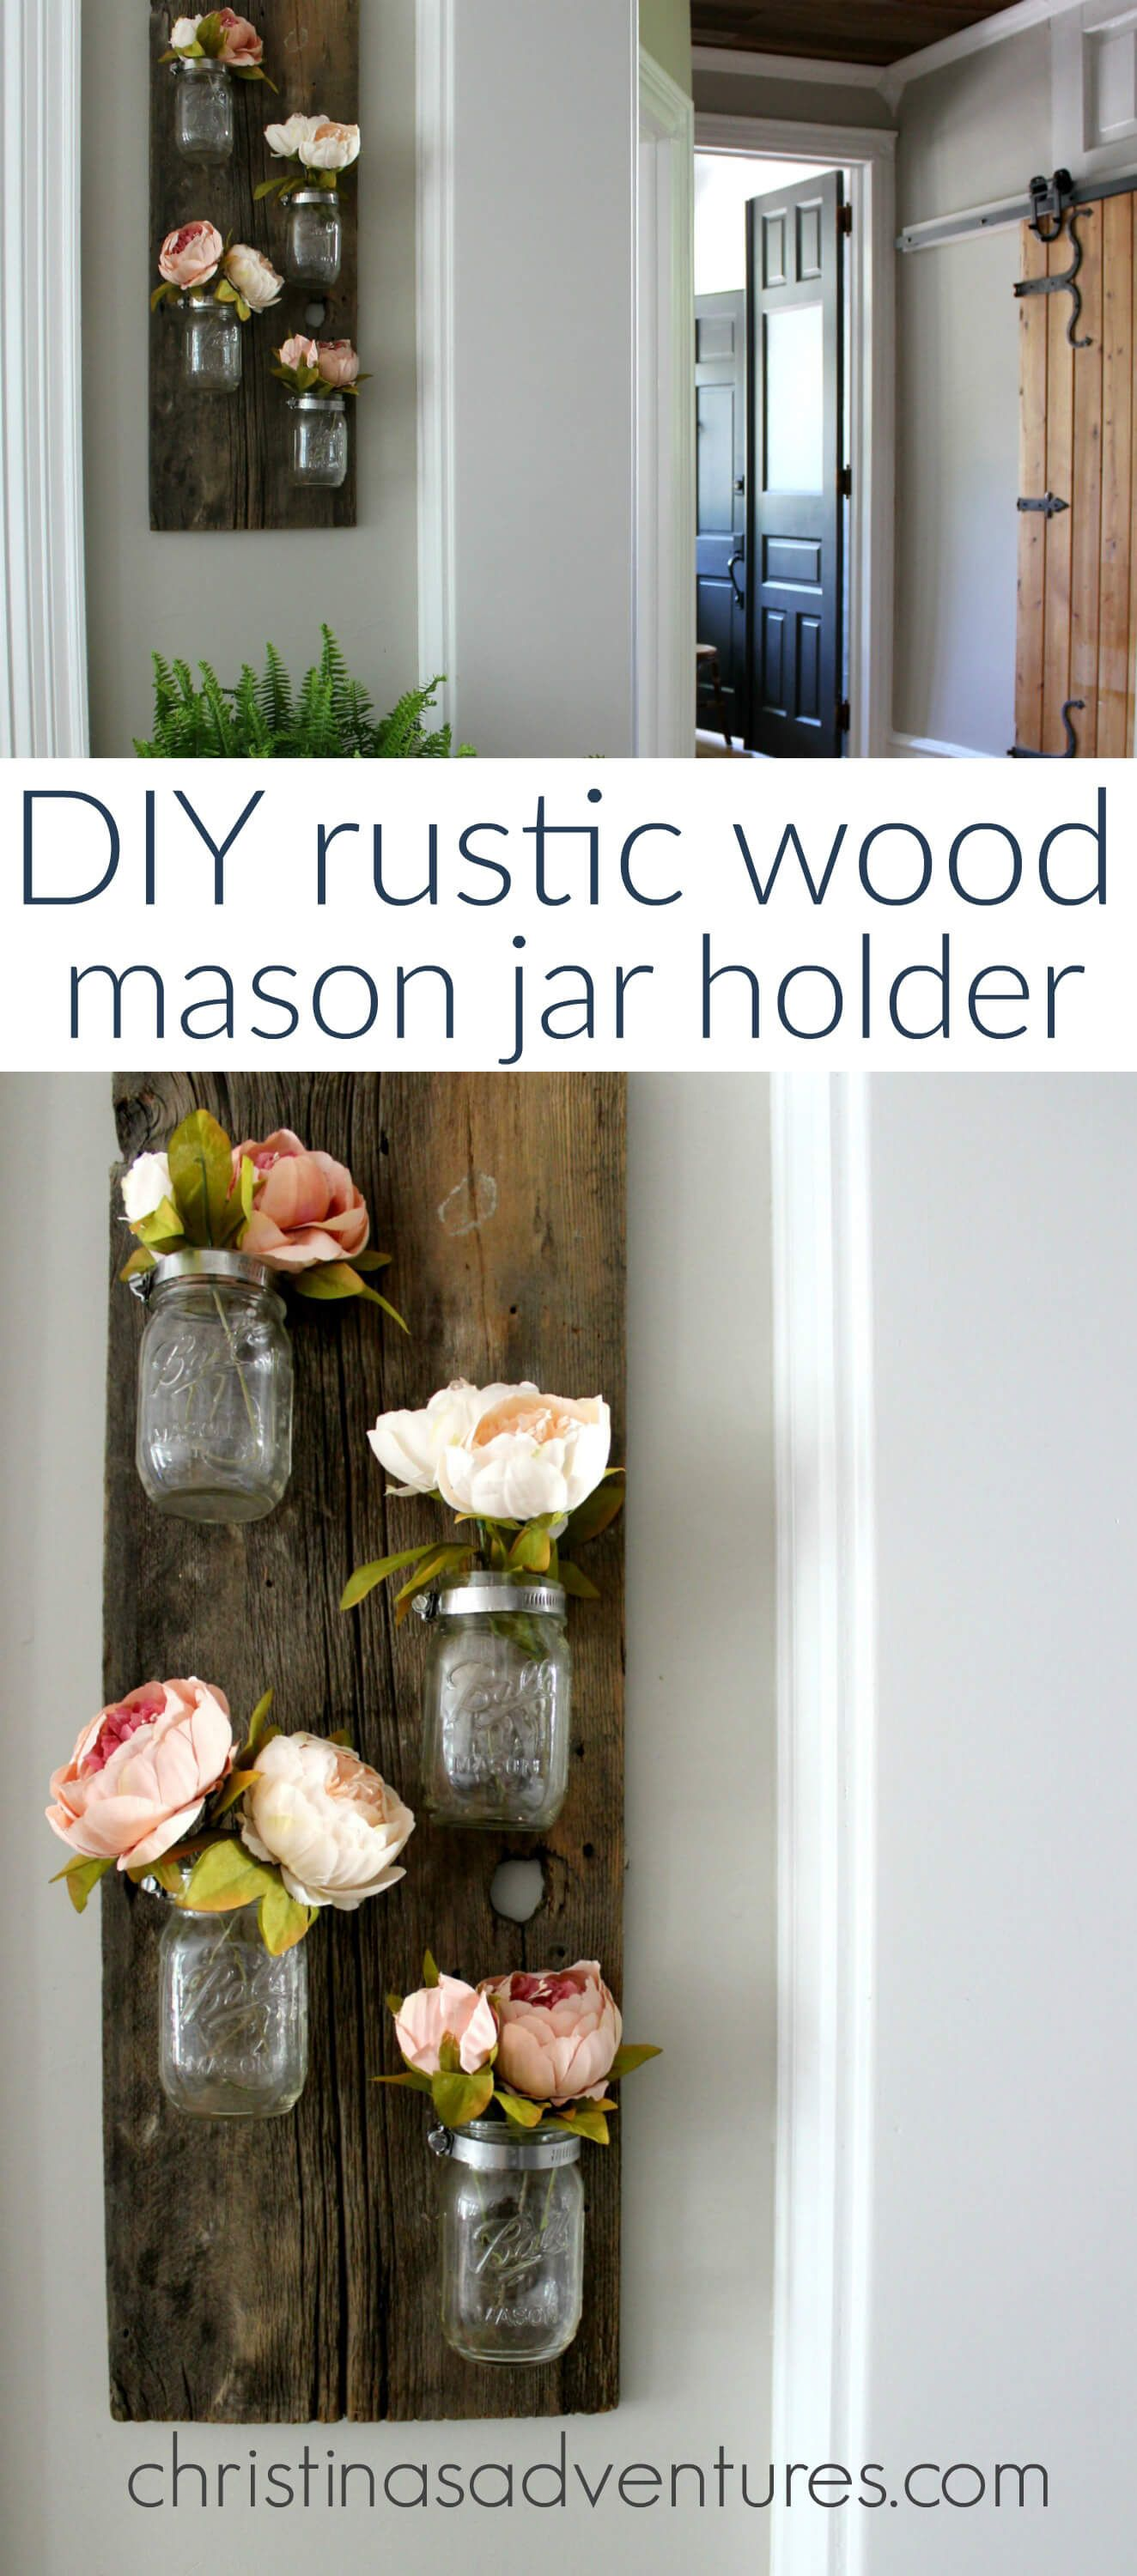 enchanting mason jar wall decor ideas to brighten your walls